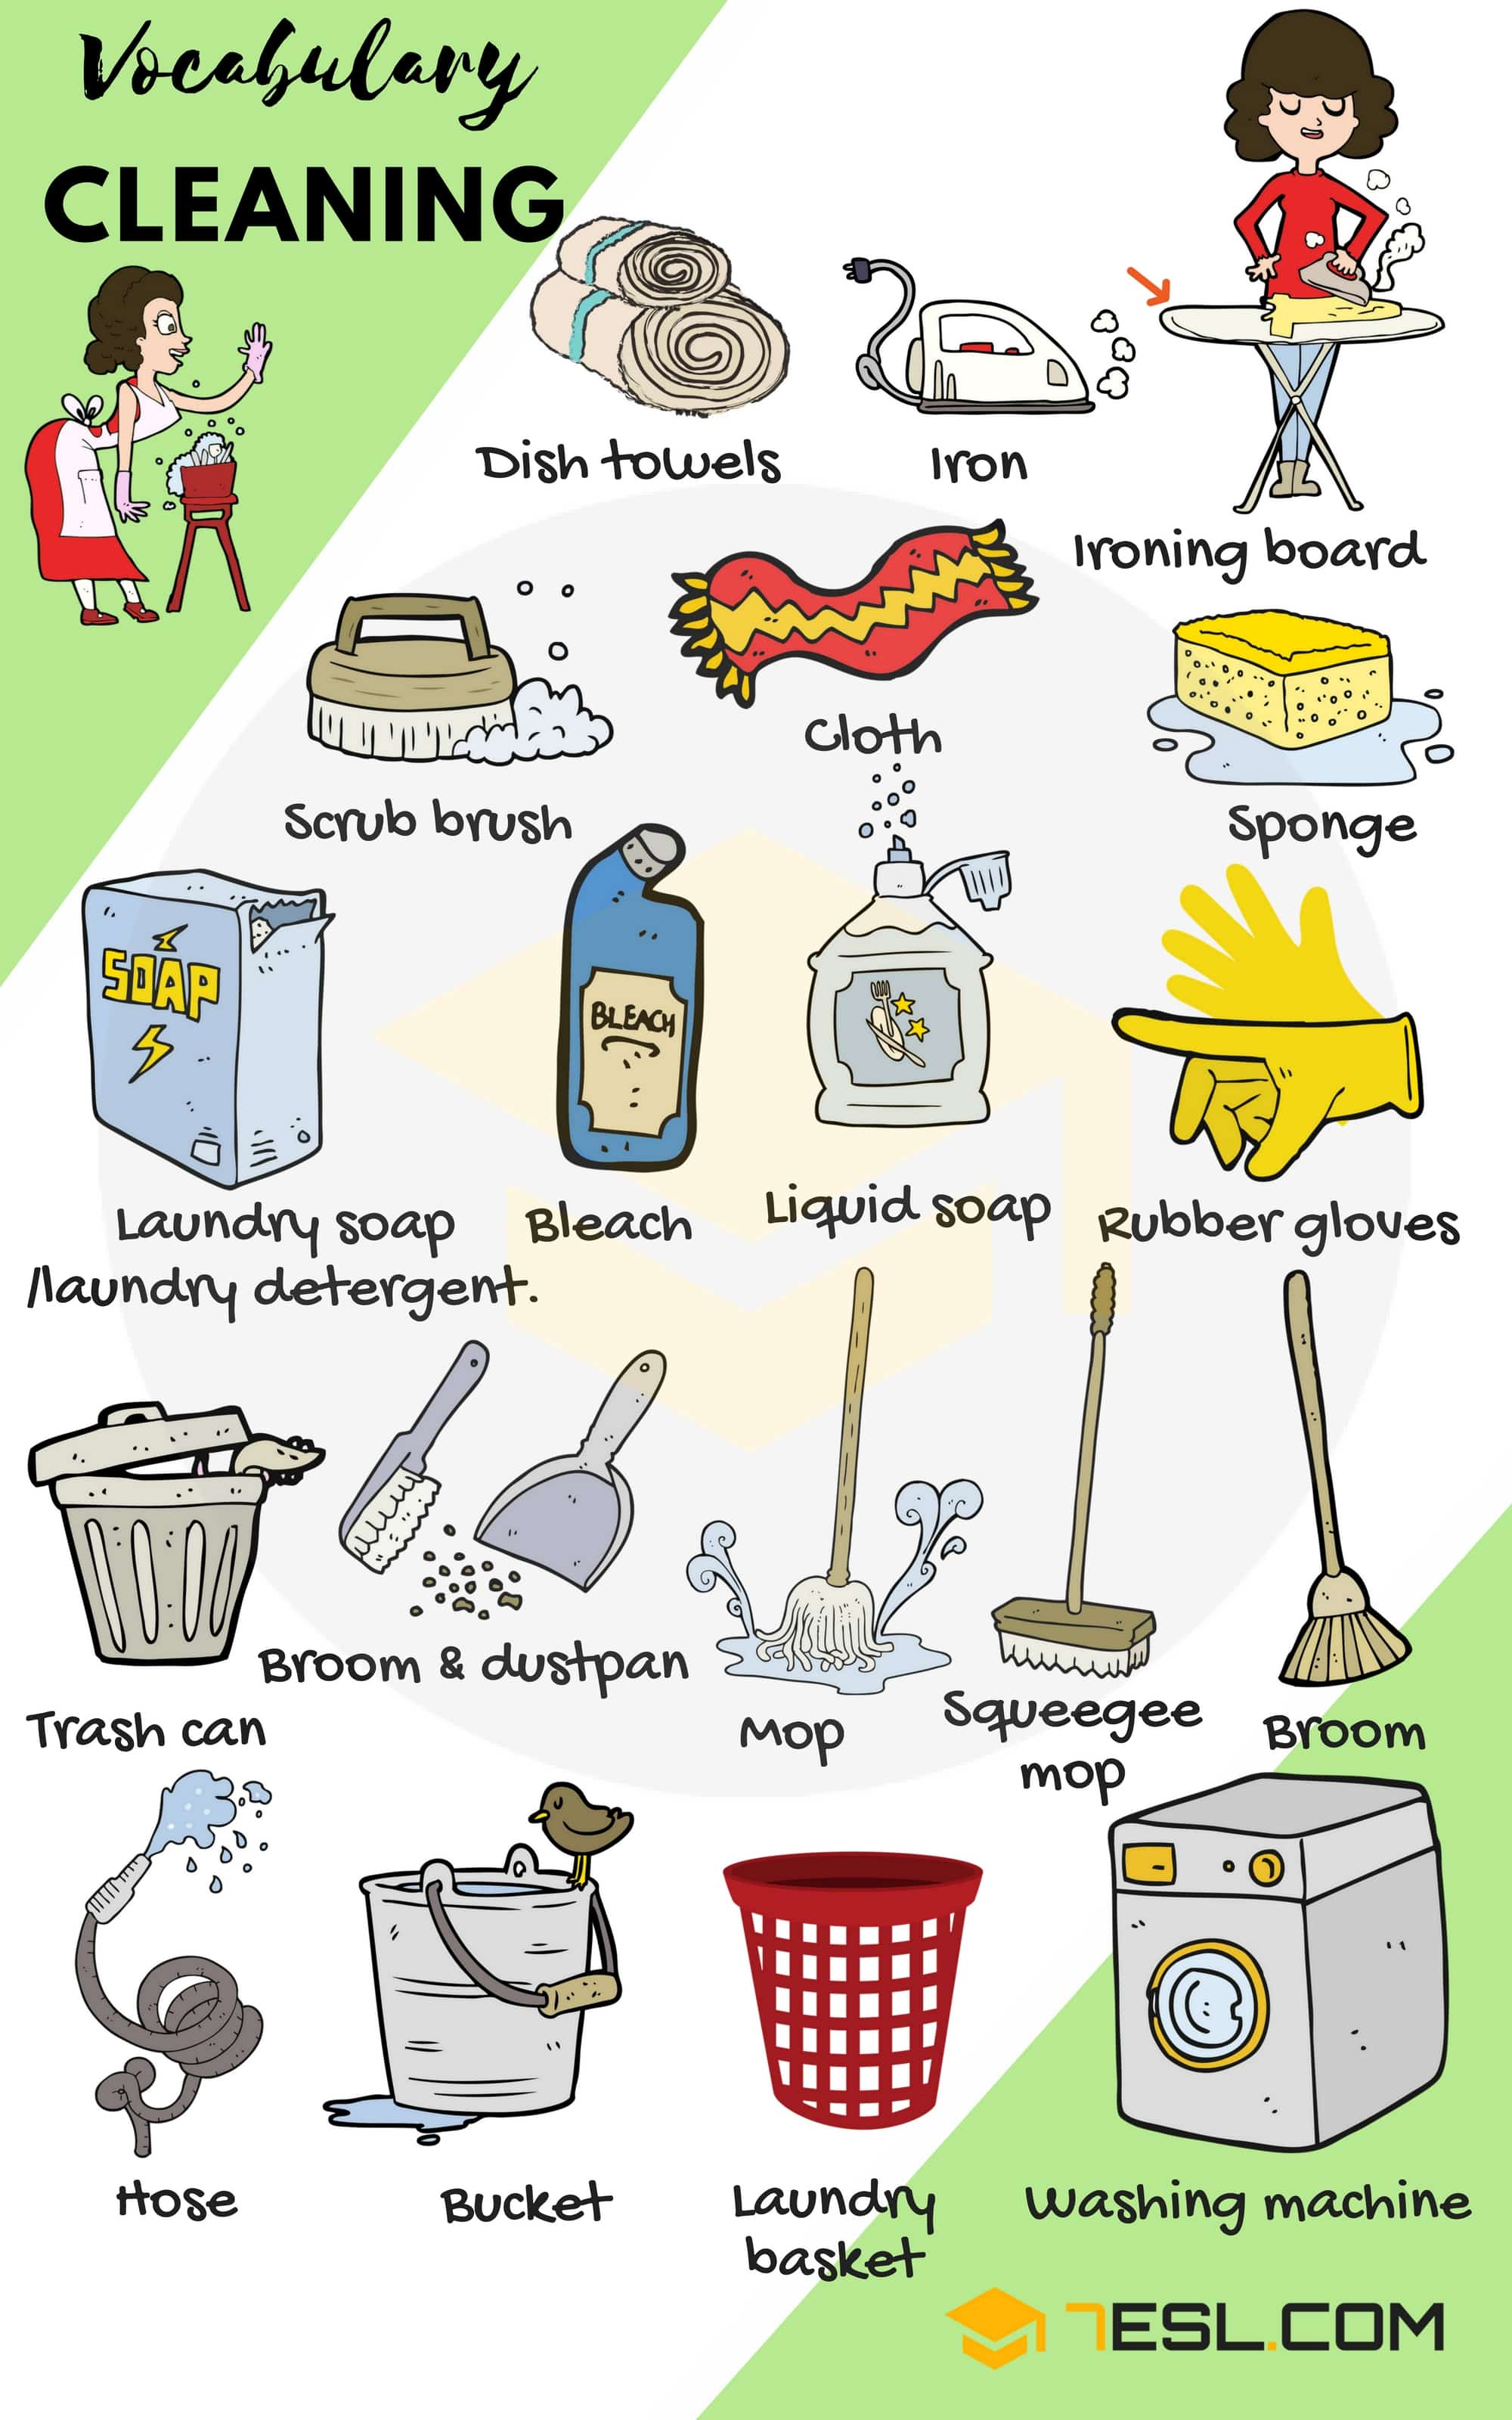 Cleaning Supplies List Of House Cleaning Amp Laundry